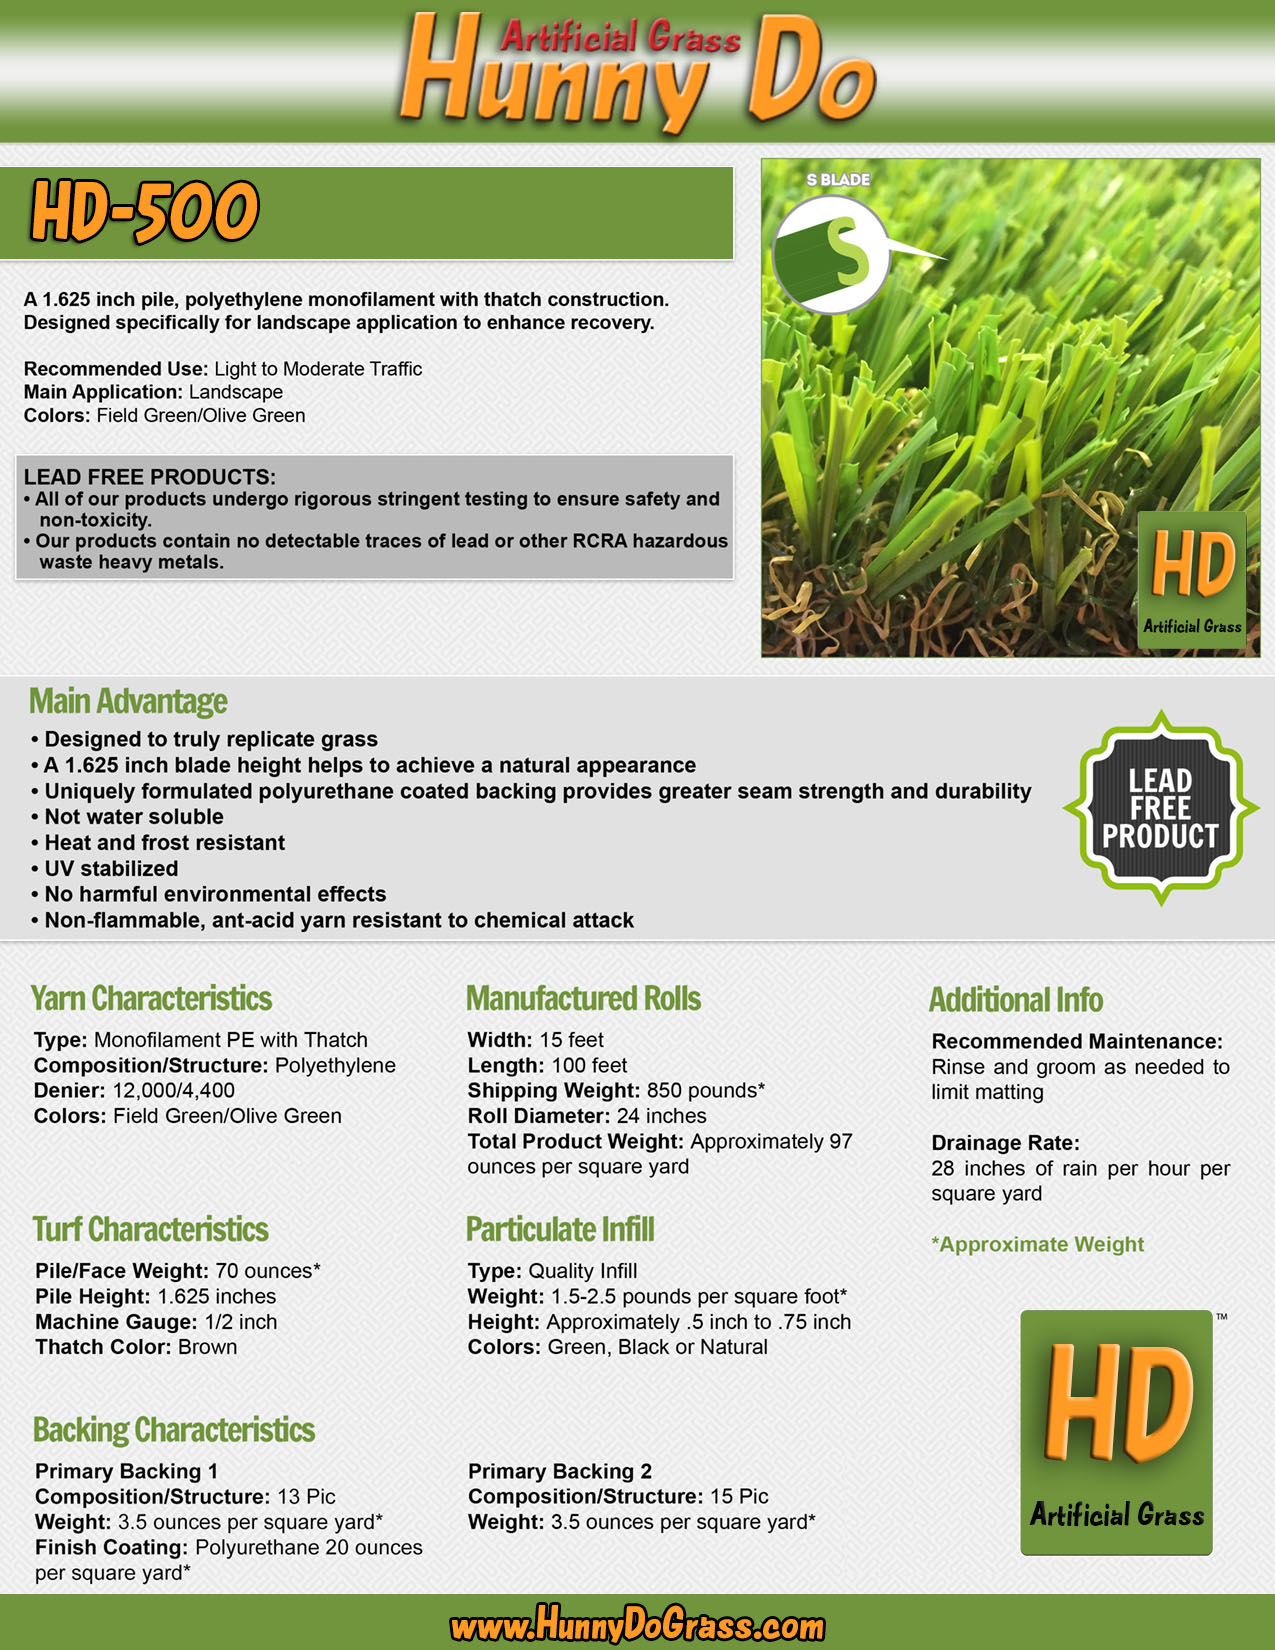 Hunny Do 500 Specifications